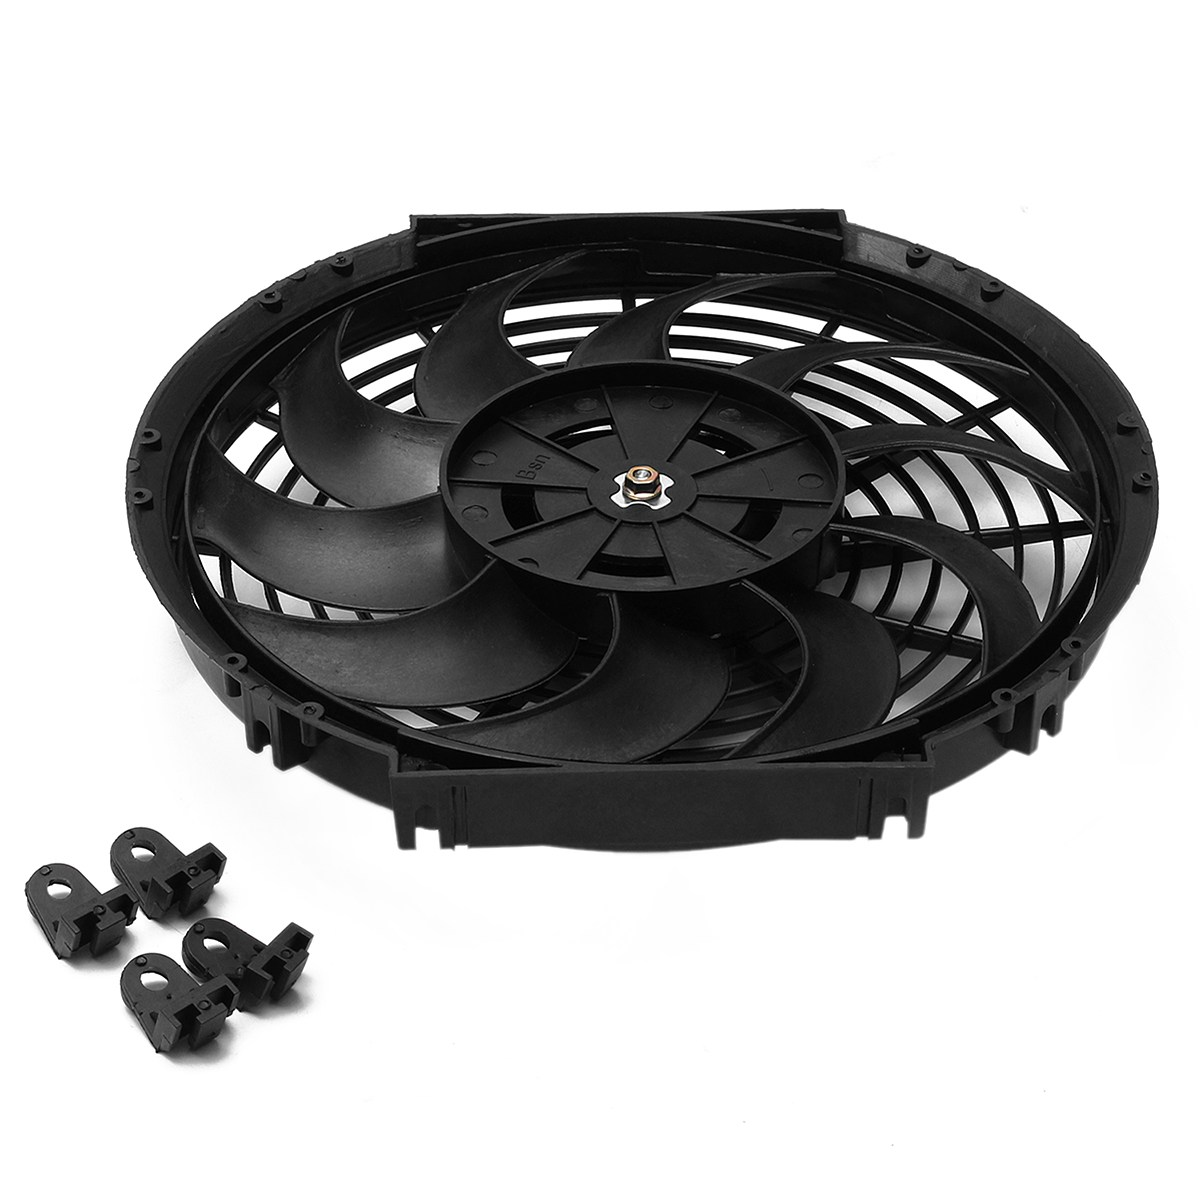 9 inch 10 inch 12 inch 12V 80W Electric Radiator Intercooler Engine Radiator Oil Cooler Cooling Fan Push Pull for Universal Car